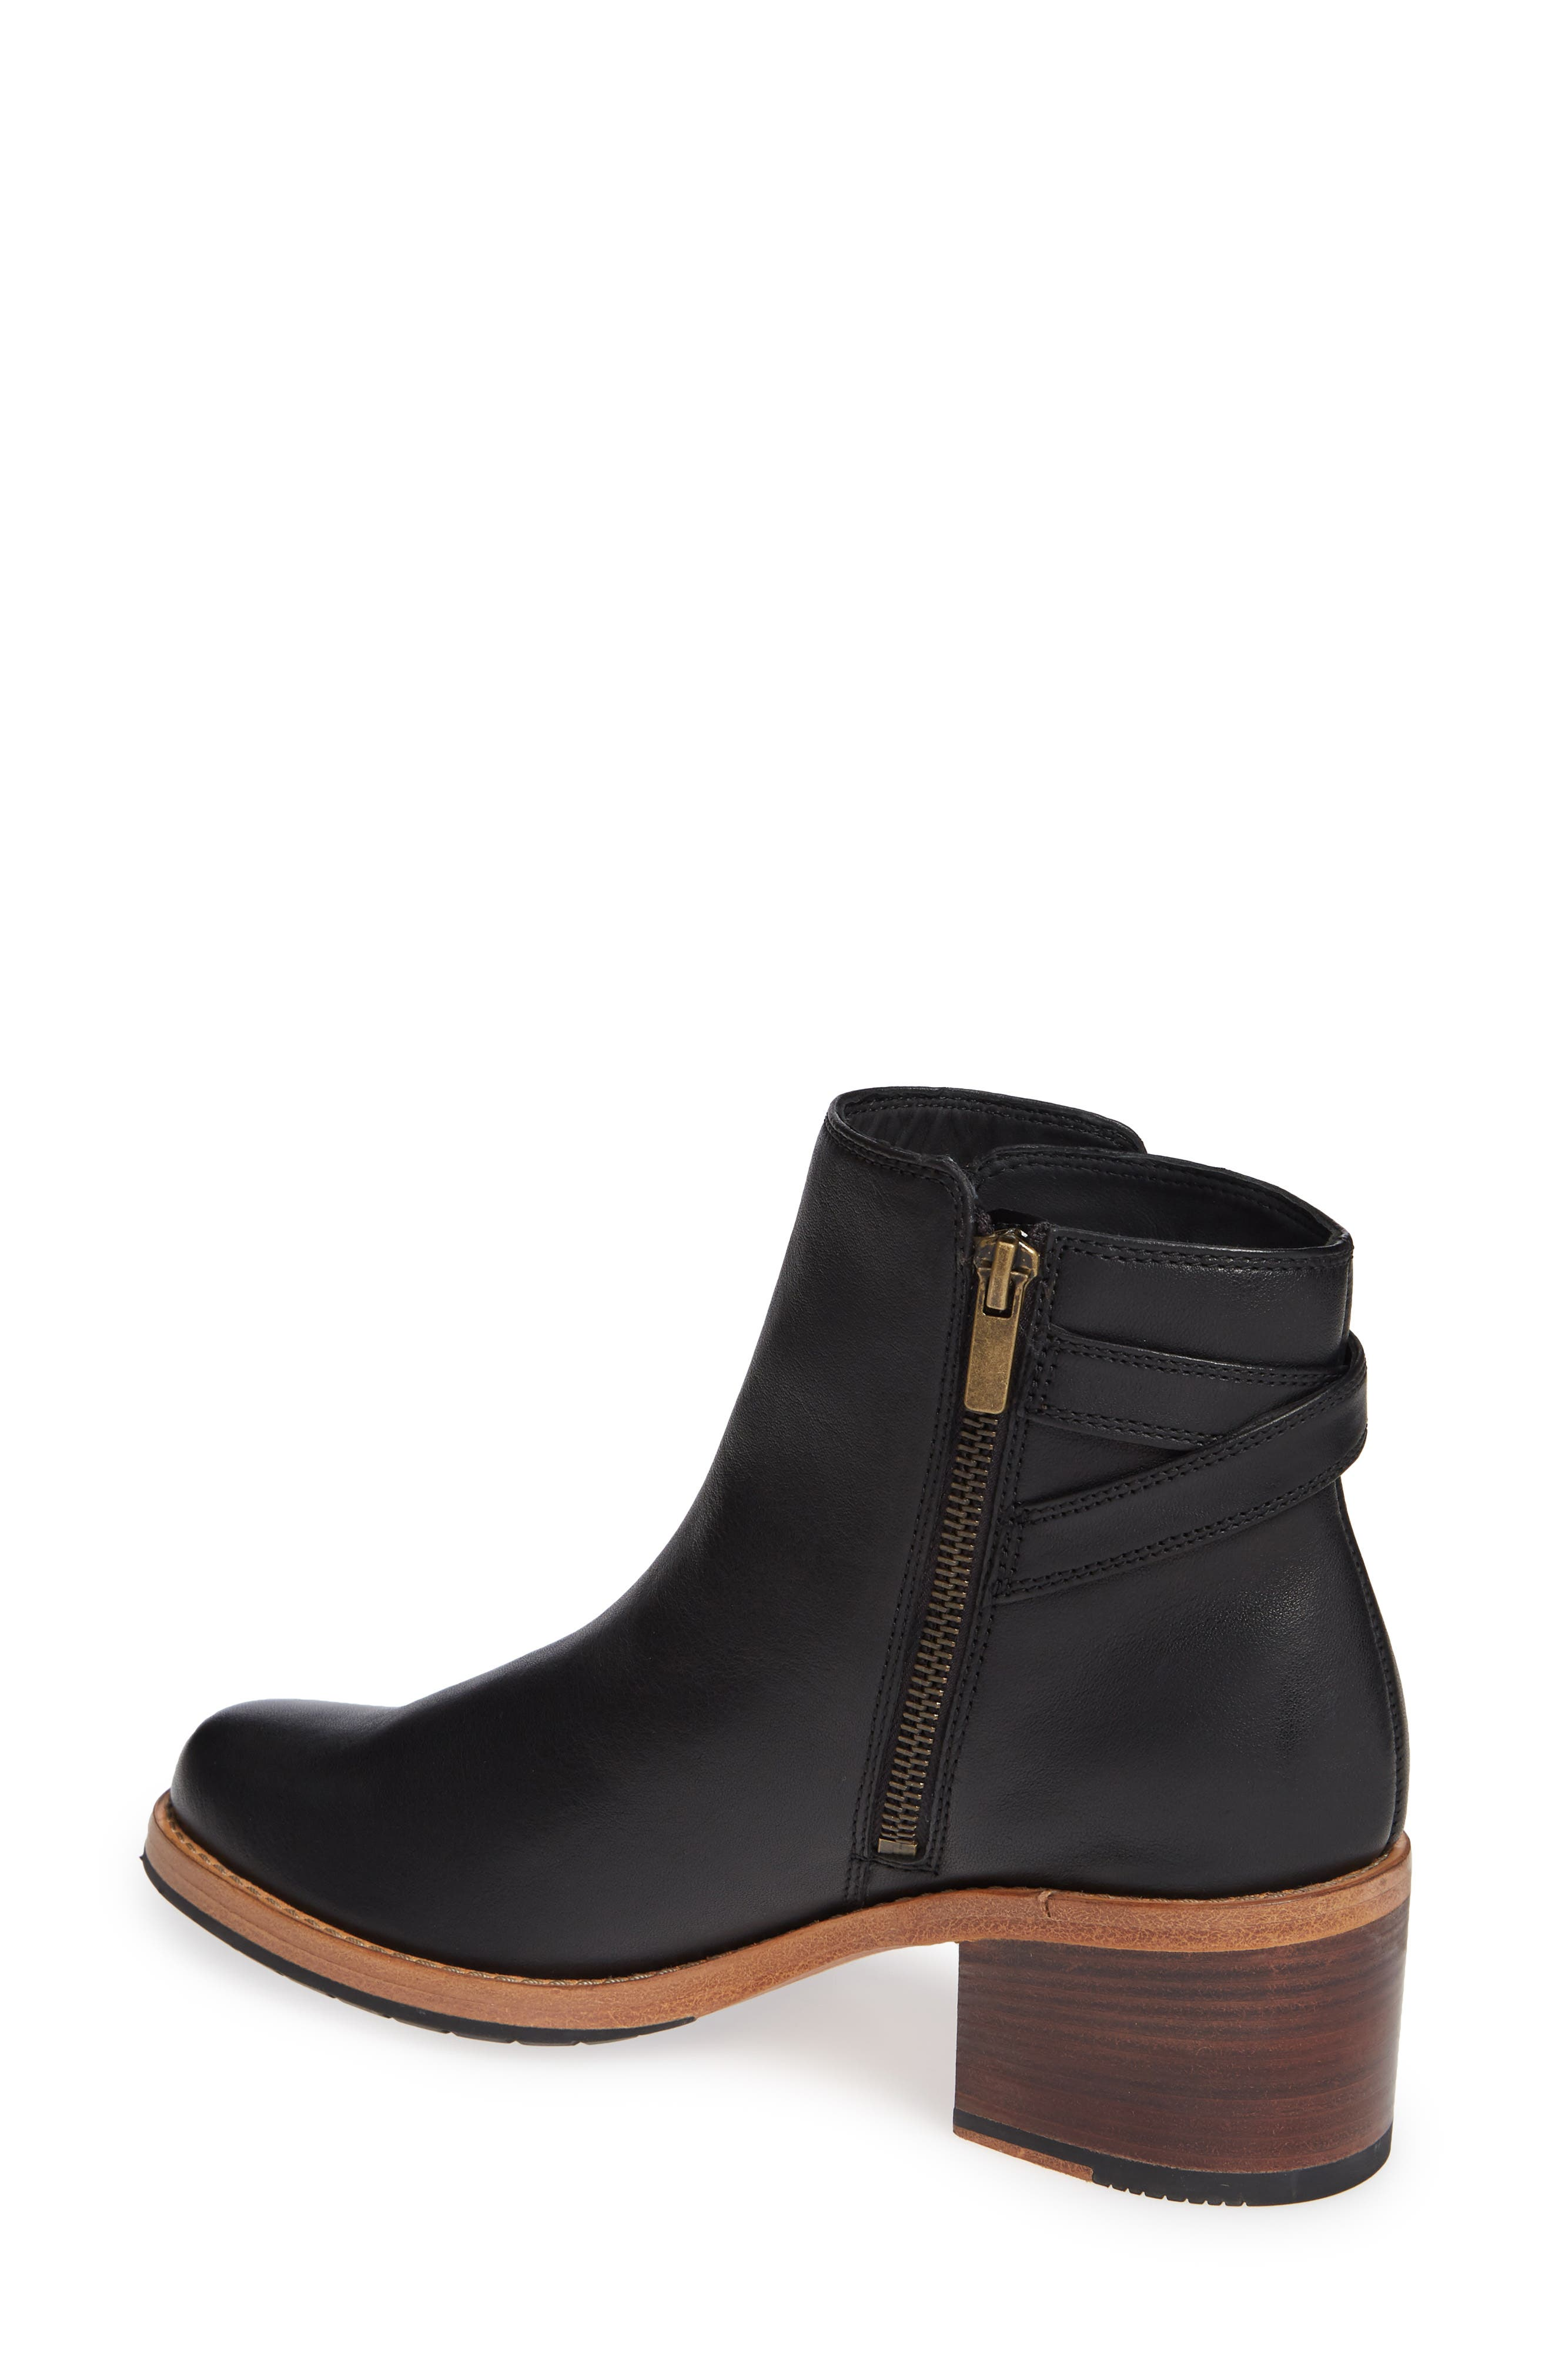 CLARKS<SUP>®</SUP>, Clarkdale Jax Bootie, Alternate thumbnail 2, color, BLACK LEATHER